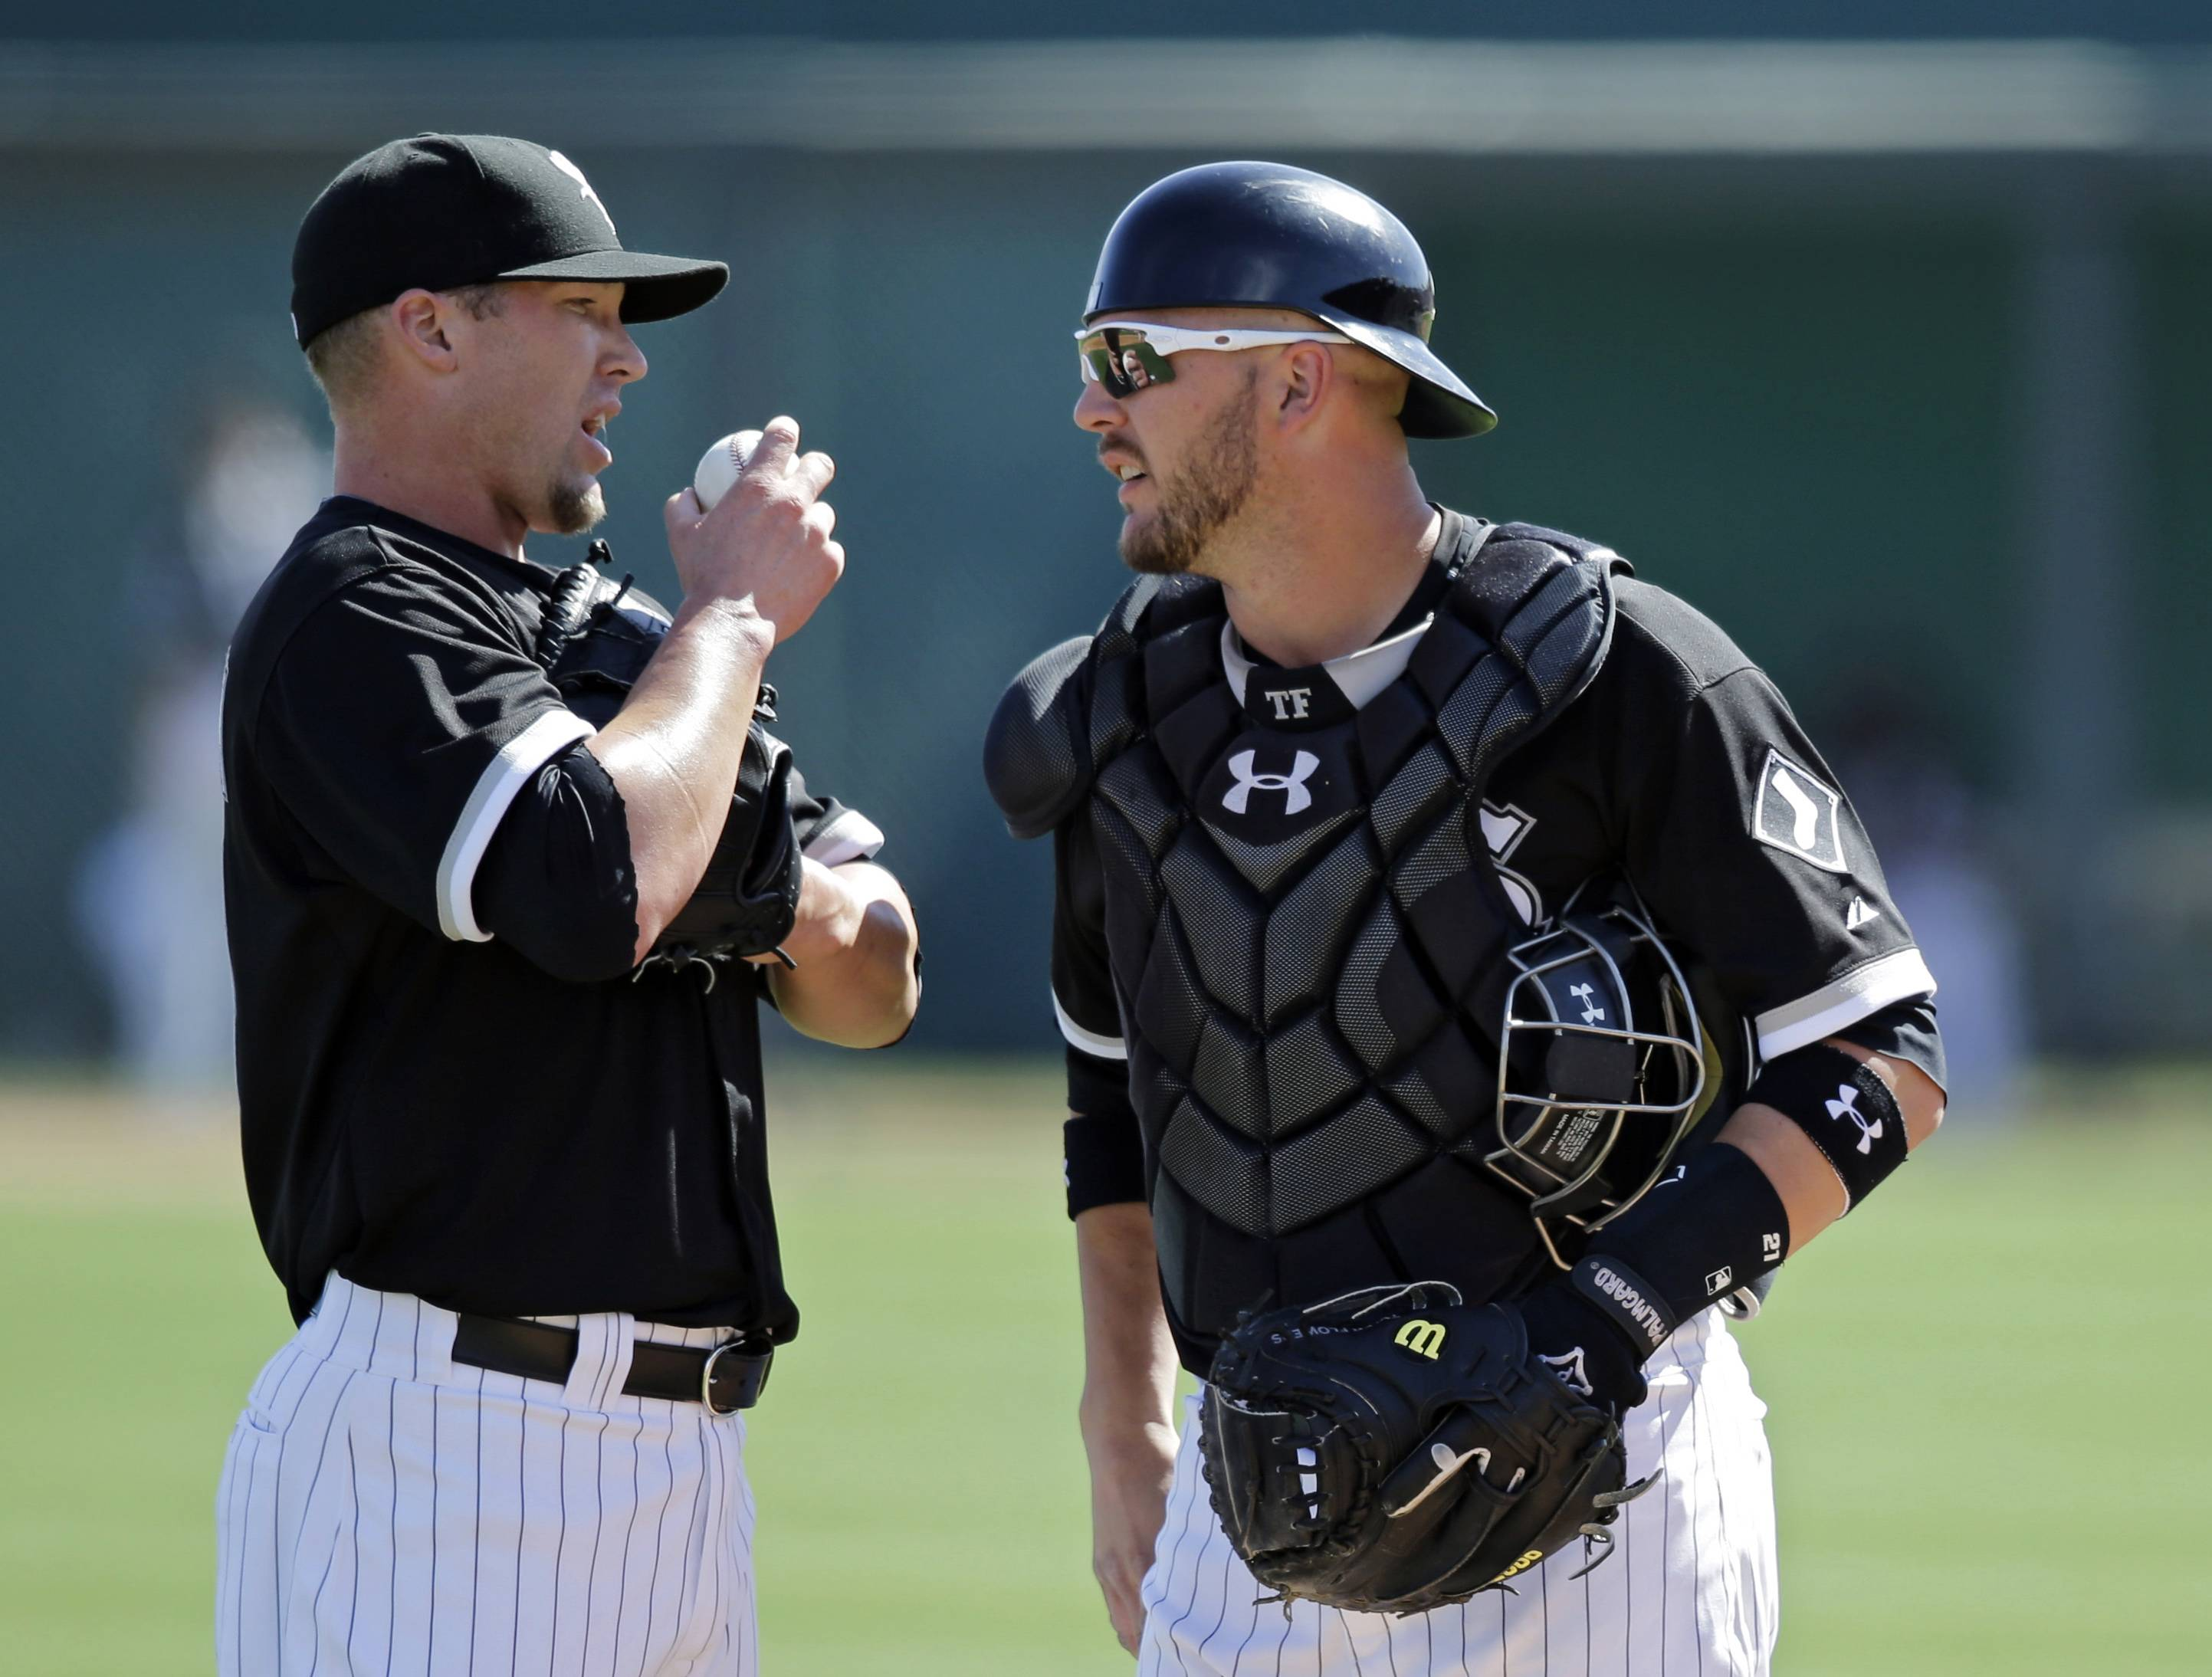 Matt Lindstrom, left, shown talking with catcher Tyler Flowers, is a candidate to be the White Sox closer.